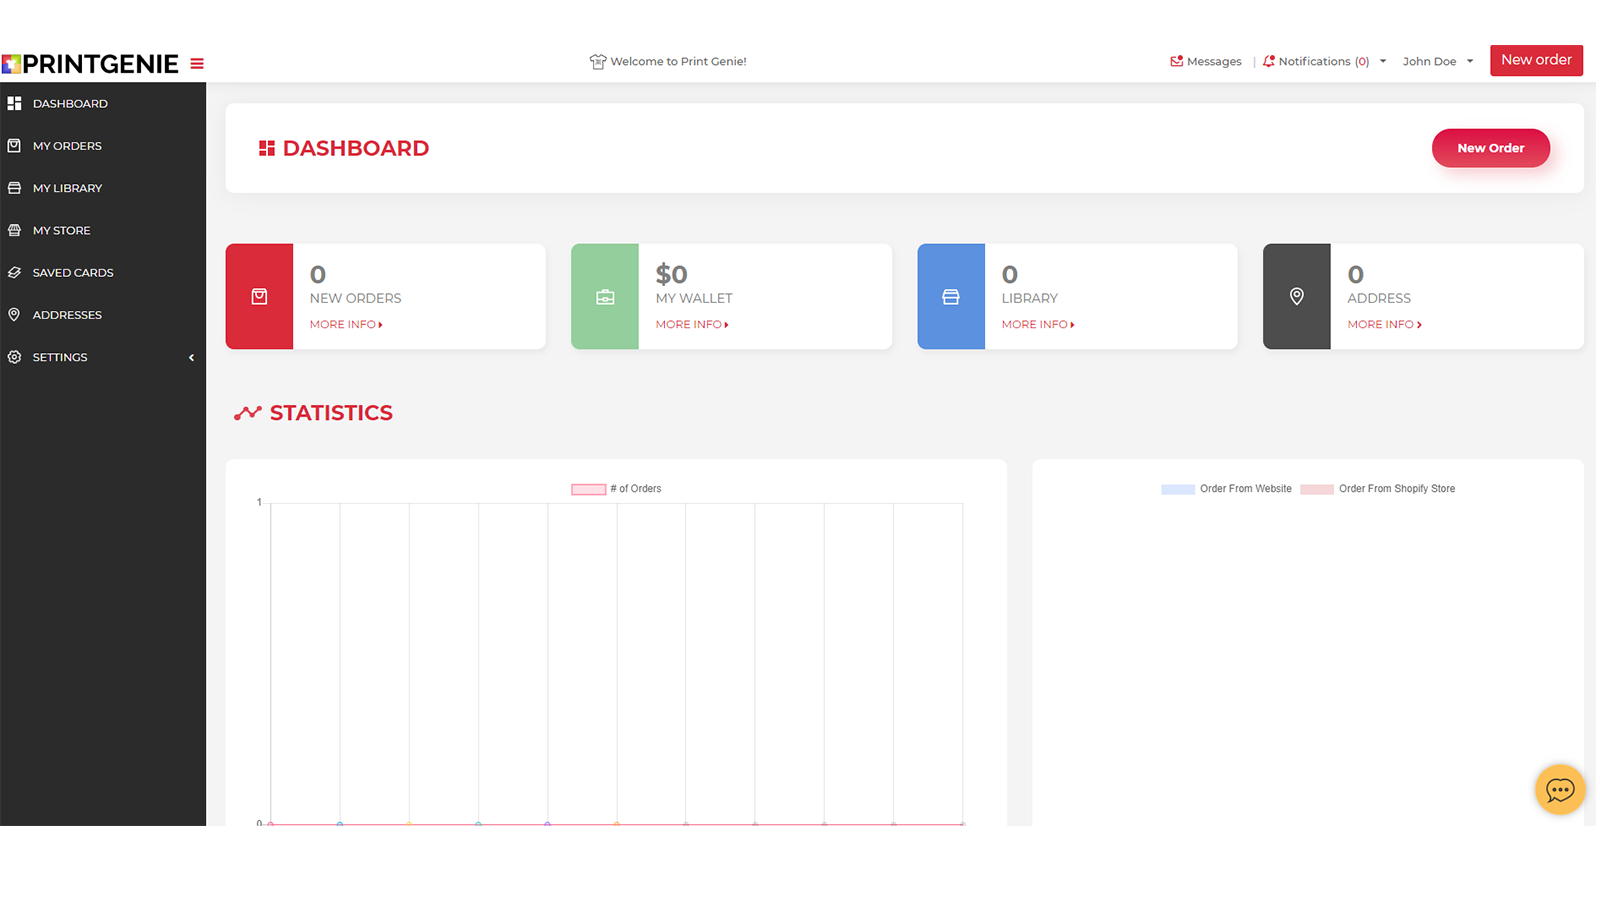 User Dashboard Page